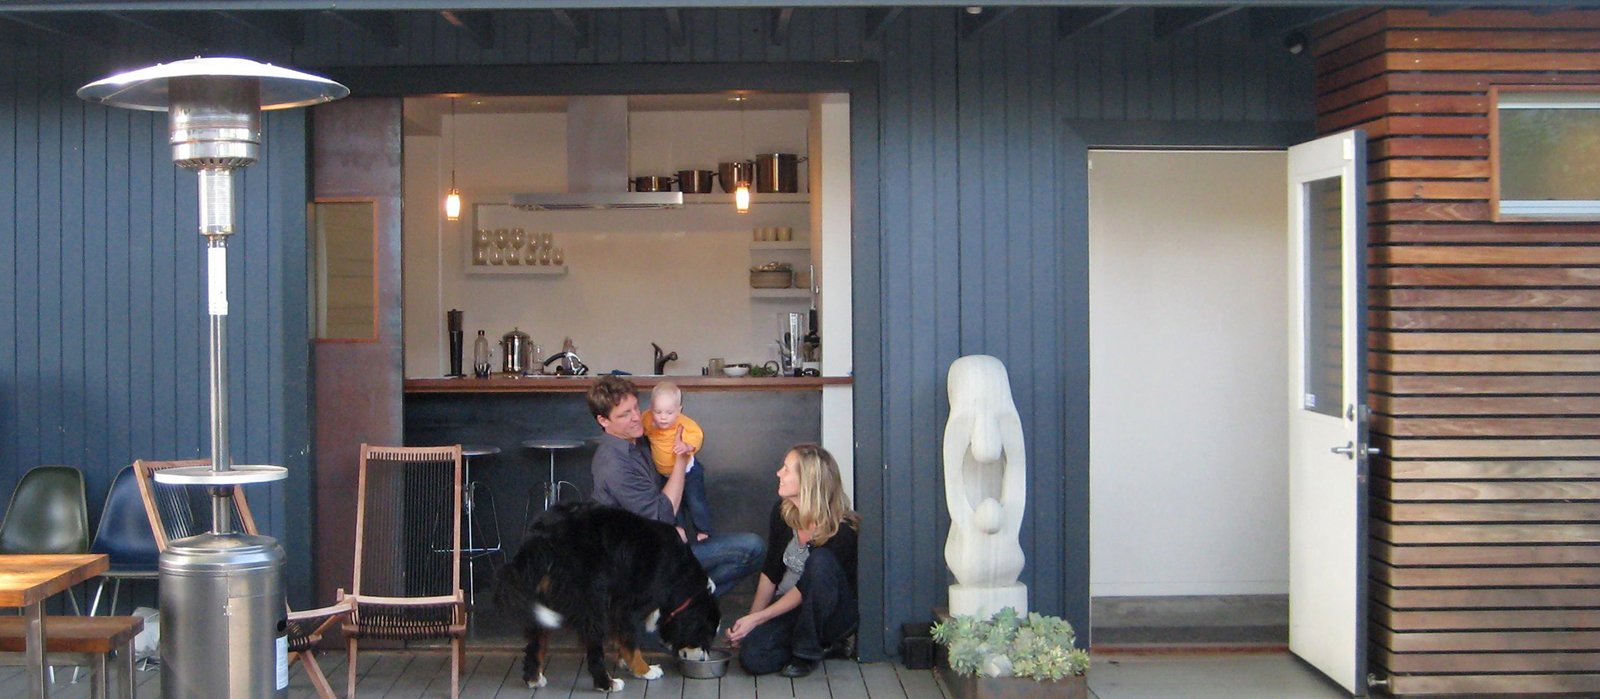 "Shoup, his wife, Taya, and daughter, Hannah, relax on the deck off the kitchen with their dog, Stella. ""For a high percentage of the year, we just roll open the door, and everybody hangs out in the kitchen, where we can keep an eye on Hannah,"" explains Shoup. ""There's kind of a leathery quality to it,"" he says of the door, which he fabricated of steel, with glass salvaged from an old sliding door. The sandstone sculpture is called ""Mother and Daughter."" Photo by Aya Brackett. Creative Re-Use in Oakland - Photo 4 of 11"